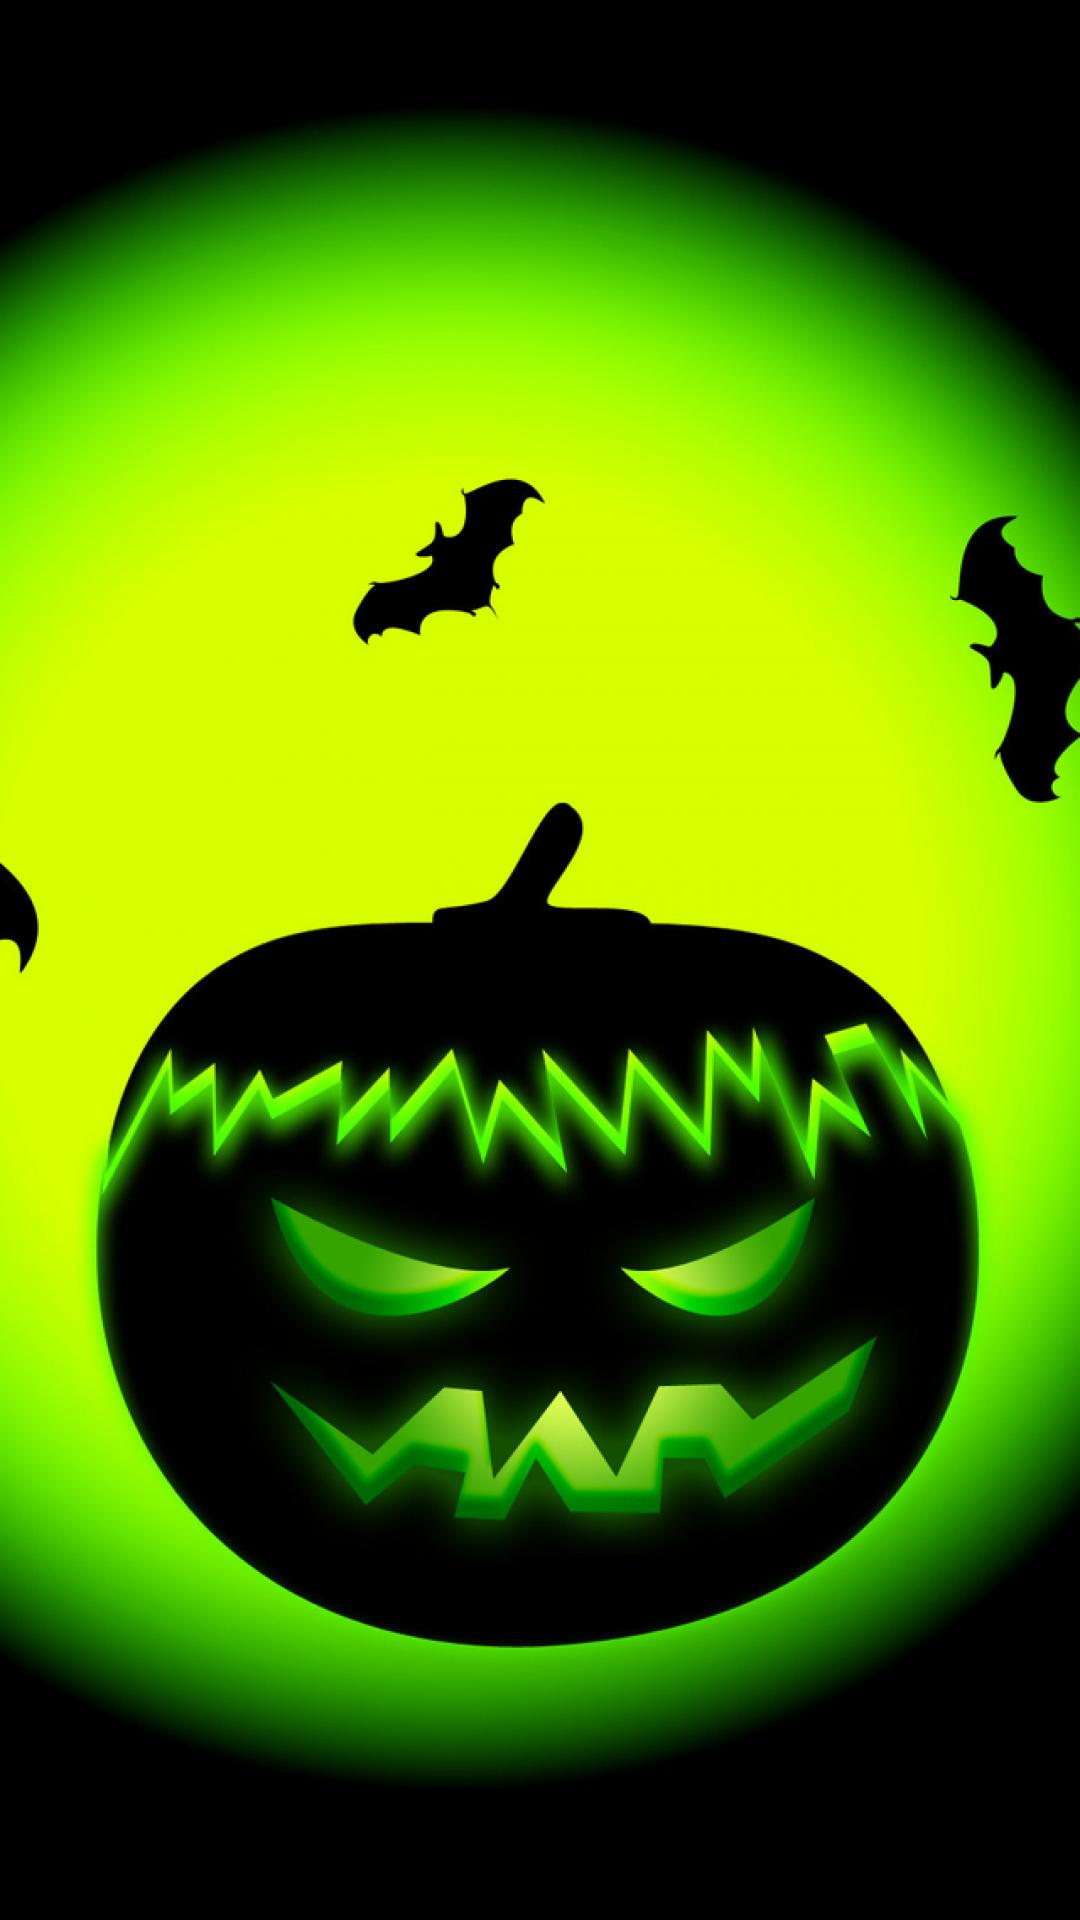 Wonderful Wallpaper Macbook Halloween - iPhone-5-retina-wallpaper-HD_Halloween_26  Pic_2840.jpg